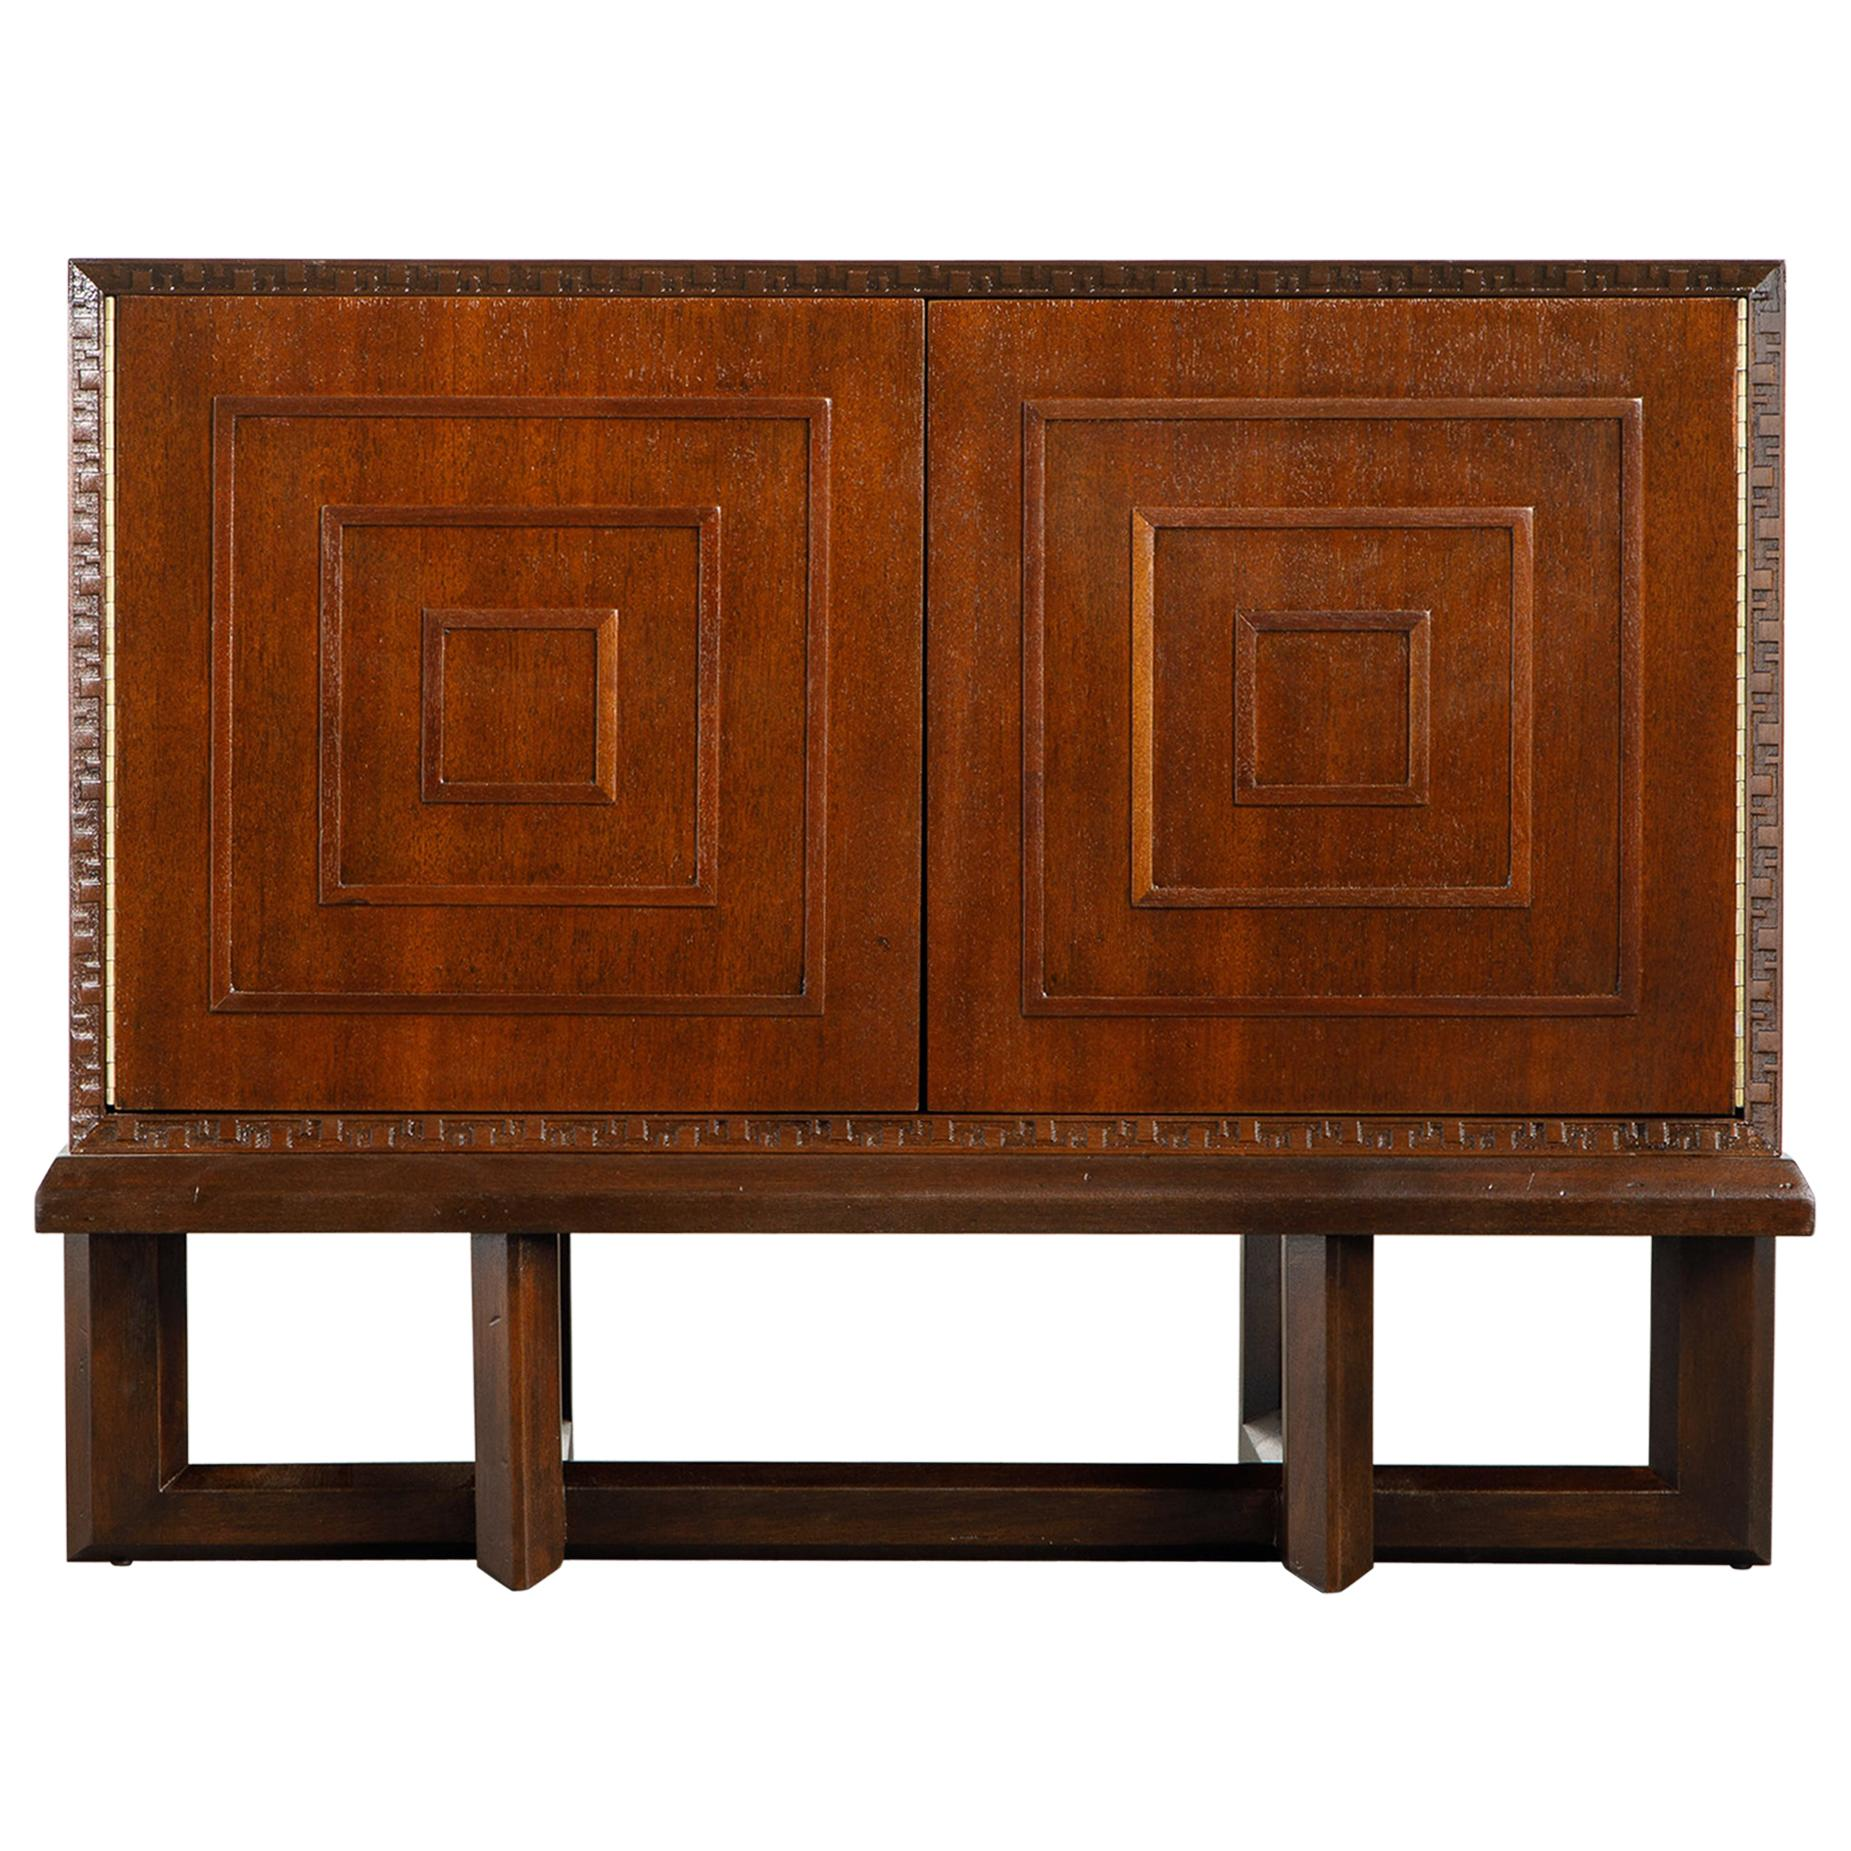 Taliesin Group Cabinet